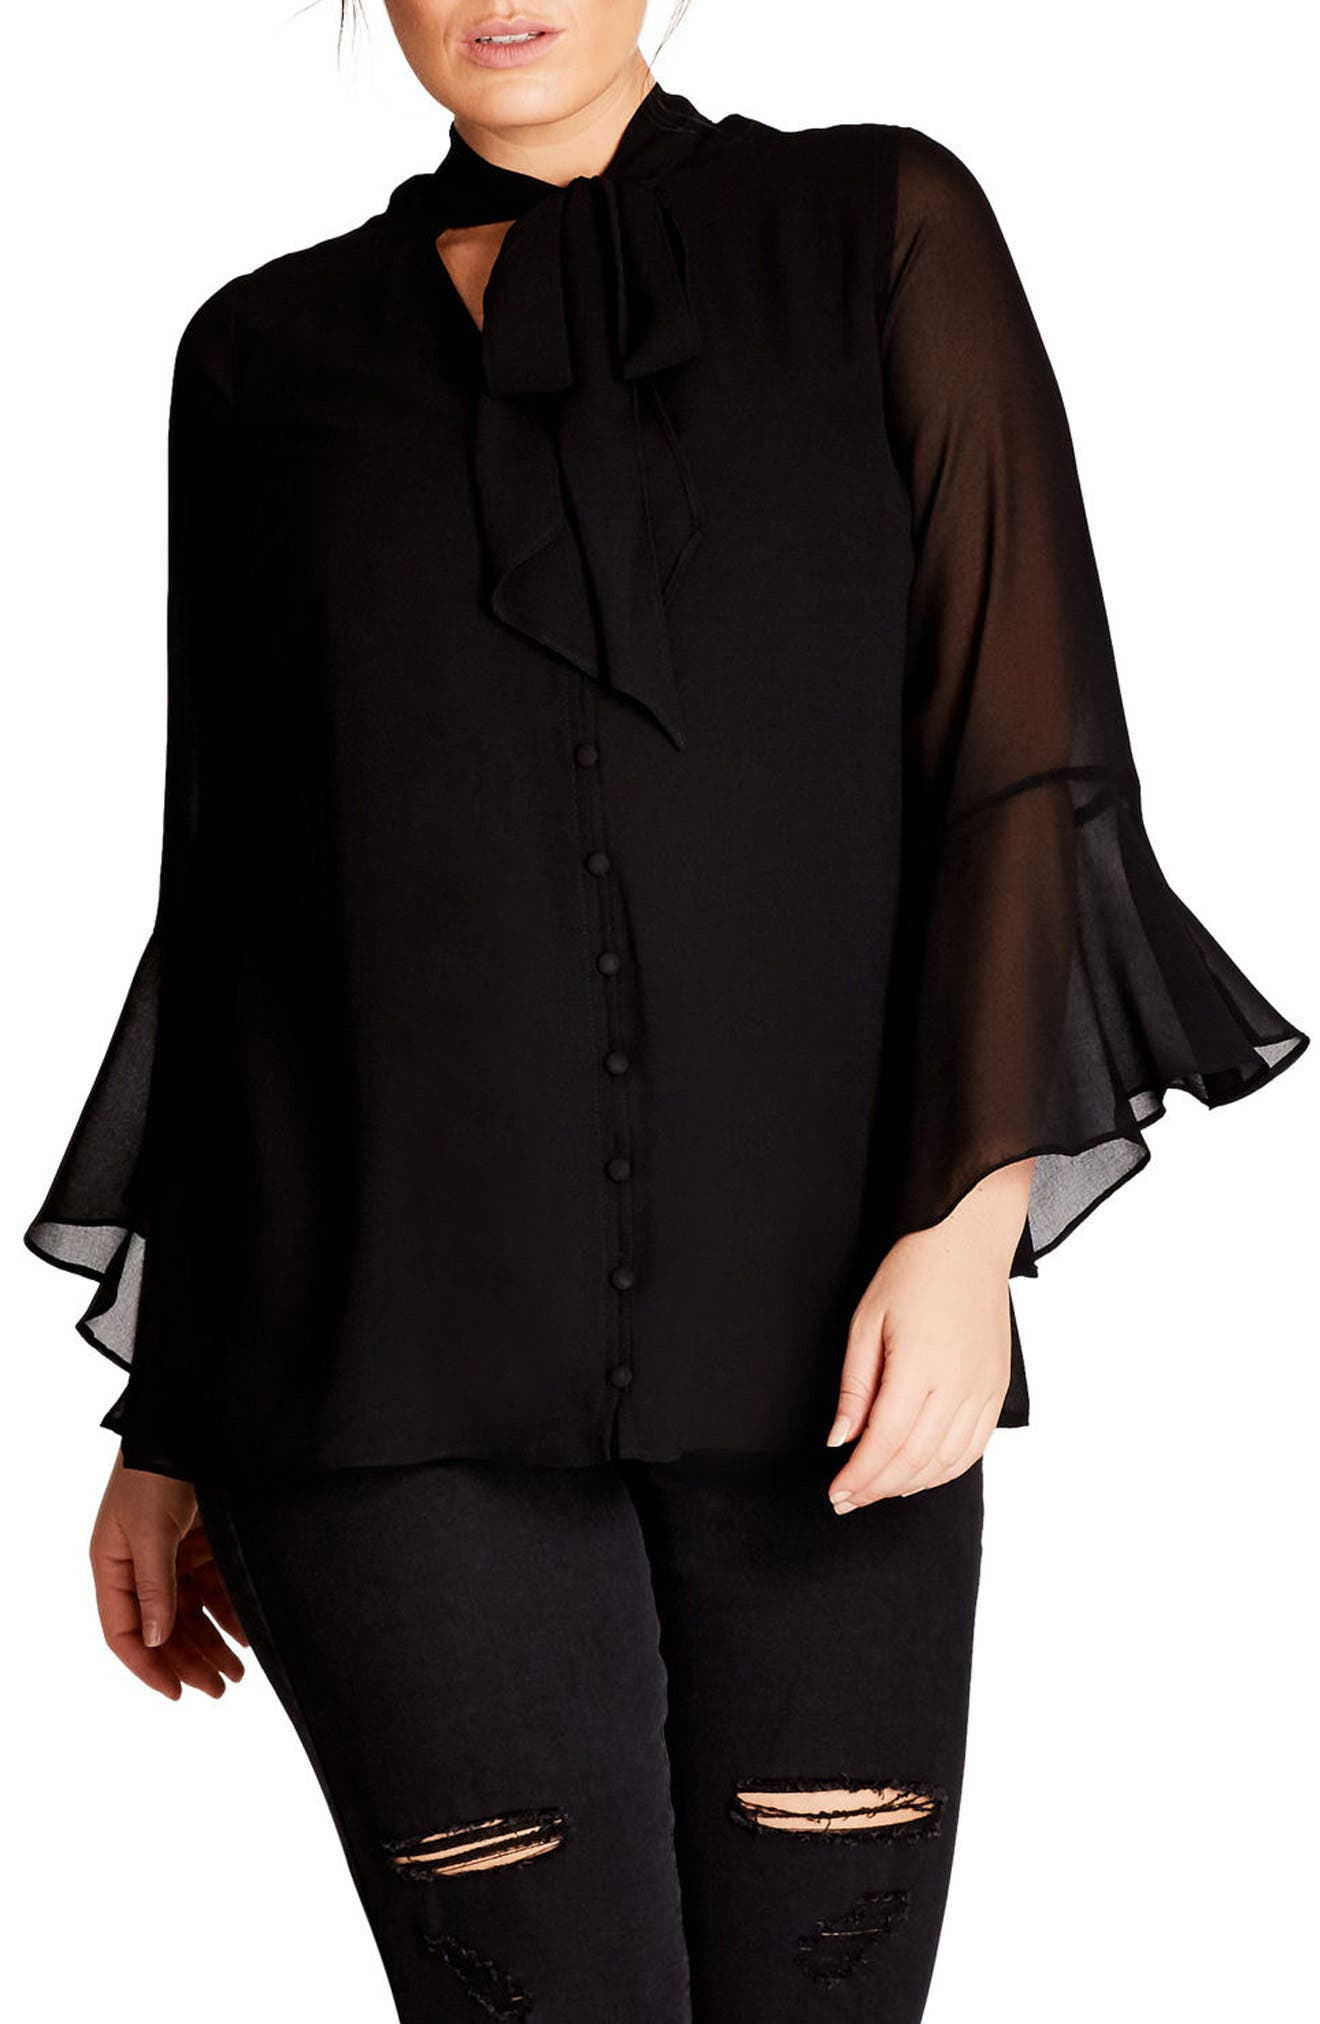 Sweet Dreams Top,                         Main,                         color, Black